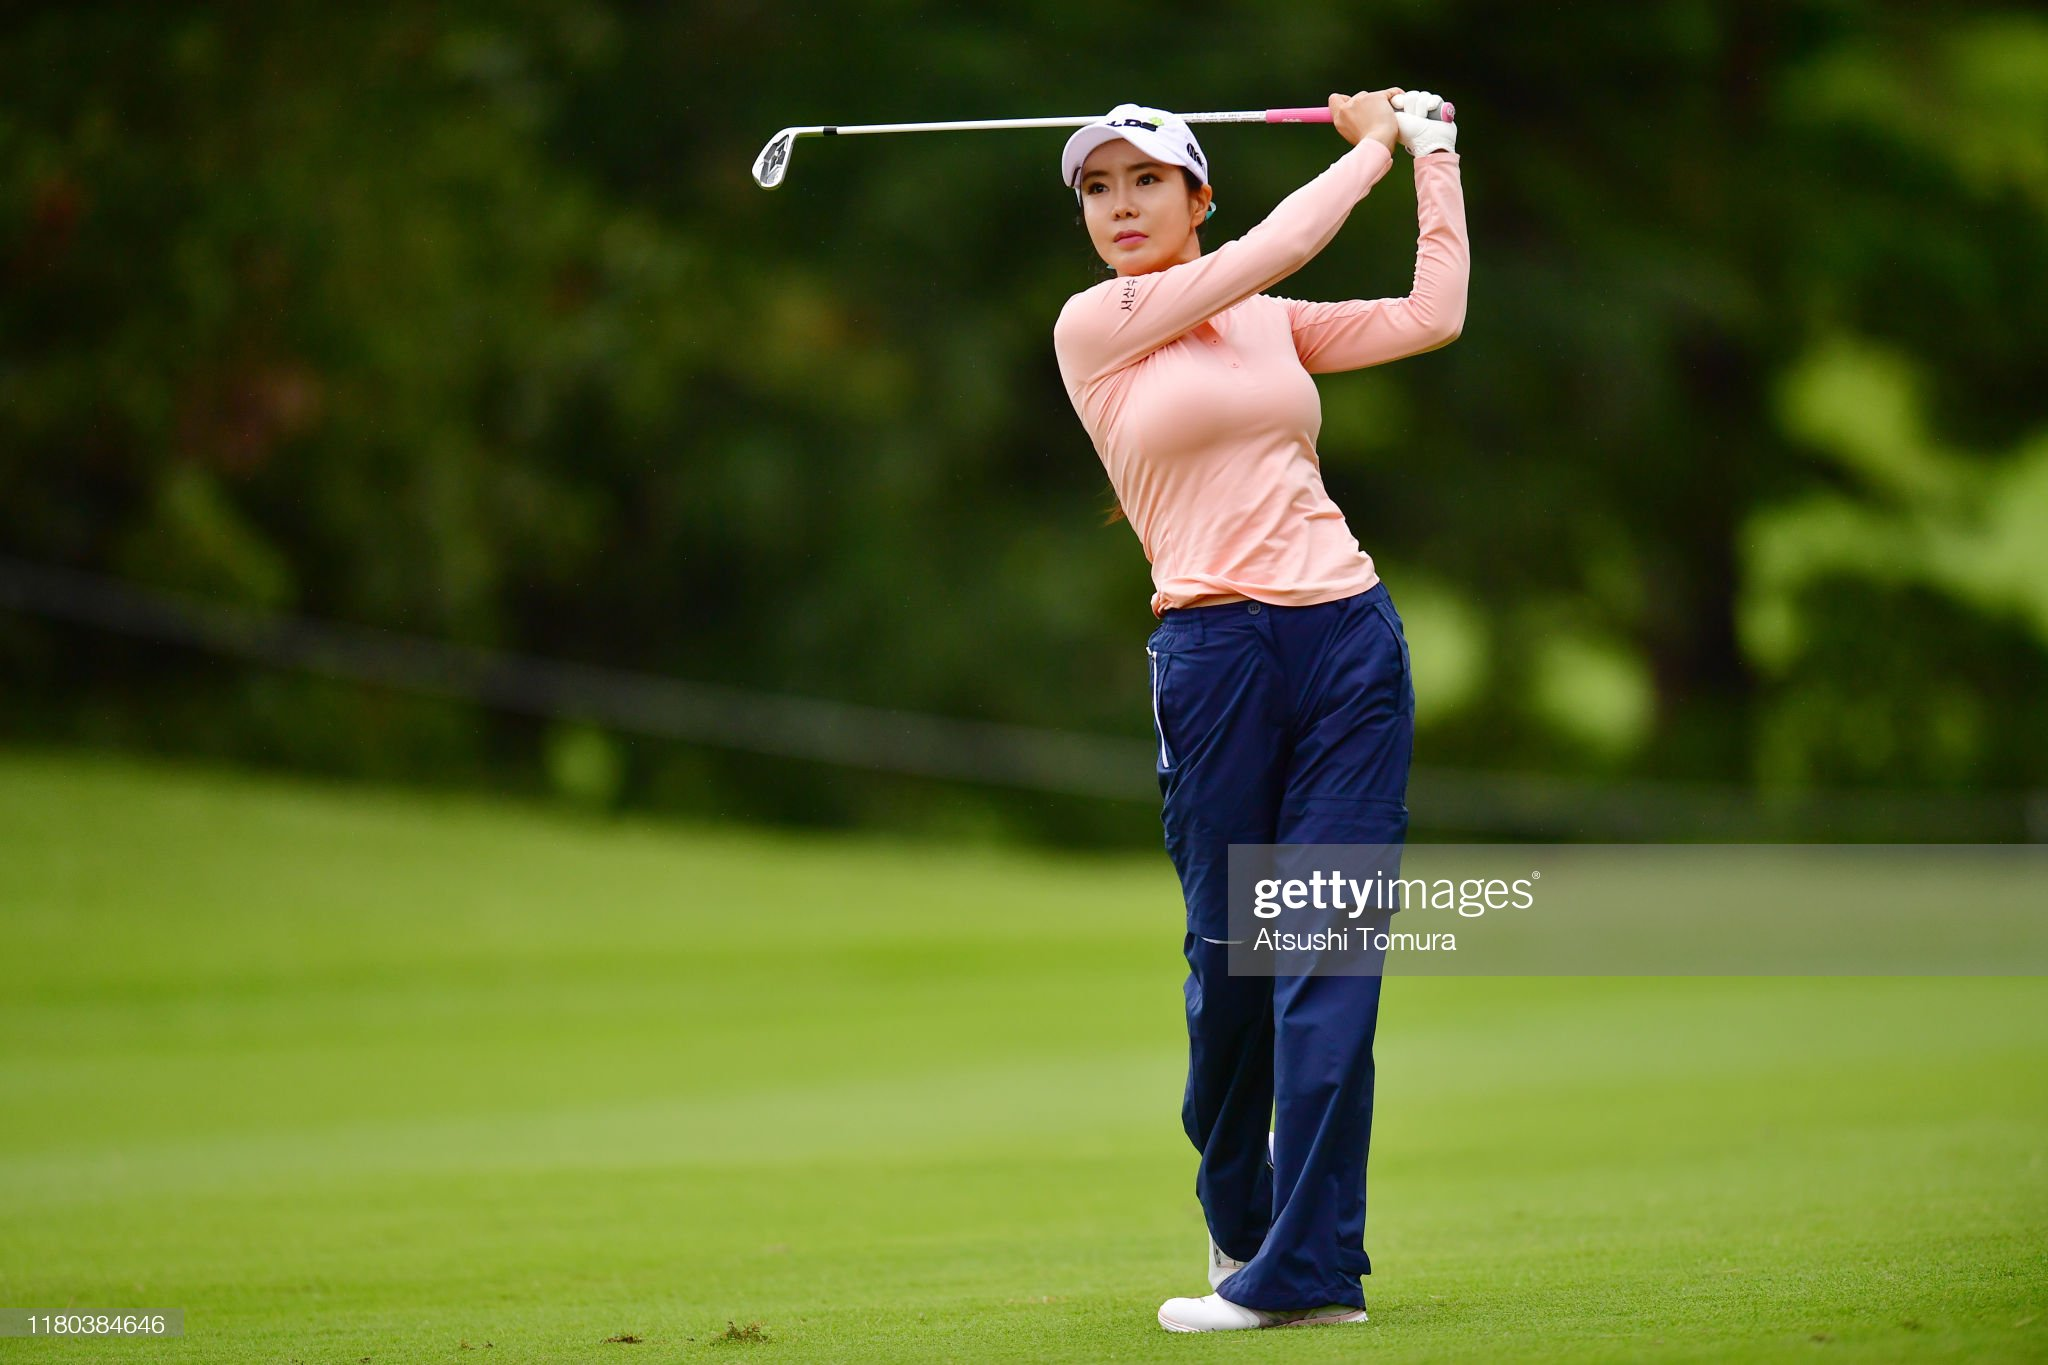 https://media.gettyimages.com/photos/shinae-ahn-of-south-korea-hits-her-second-shot-on-the-9th-hole-during-picture-id1180384646?s=2048x2048